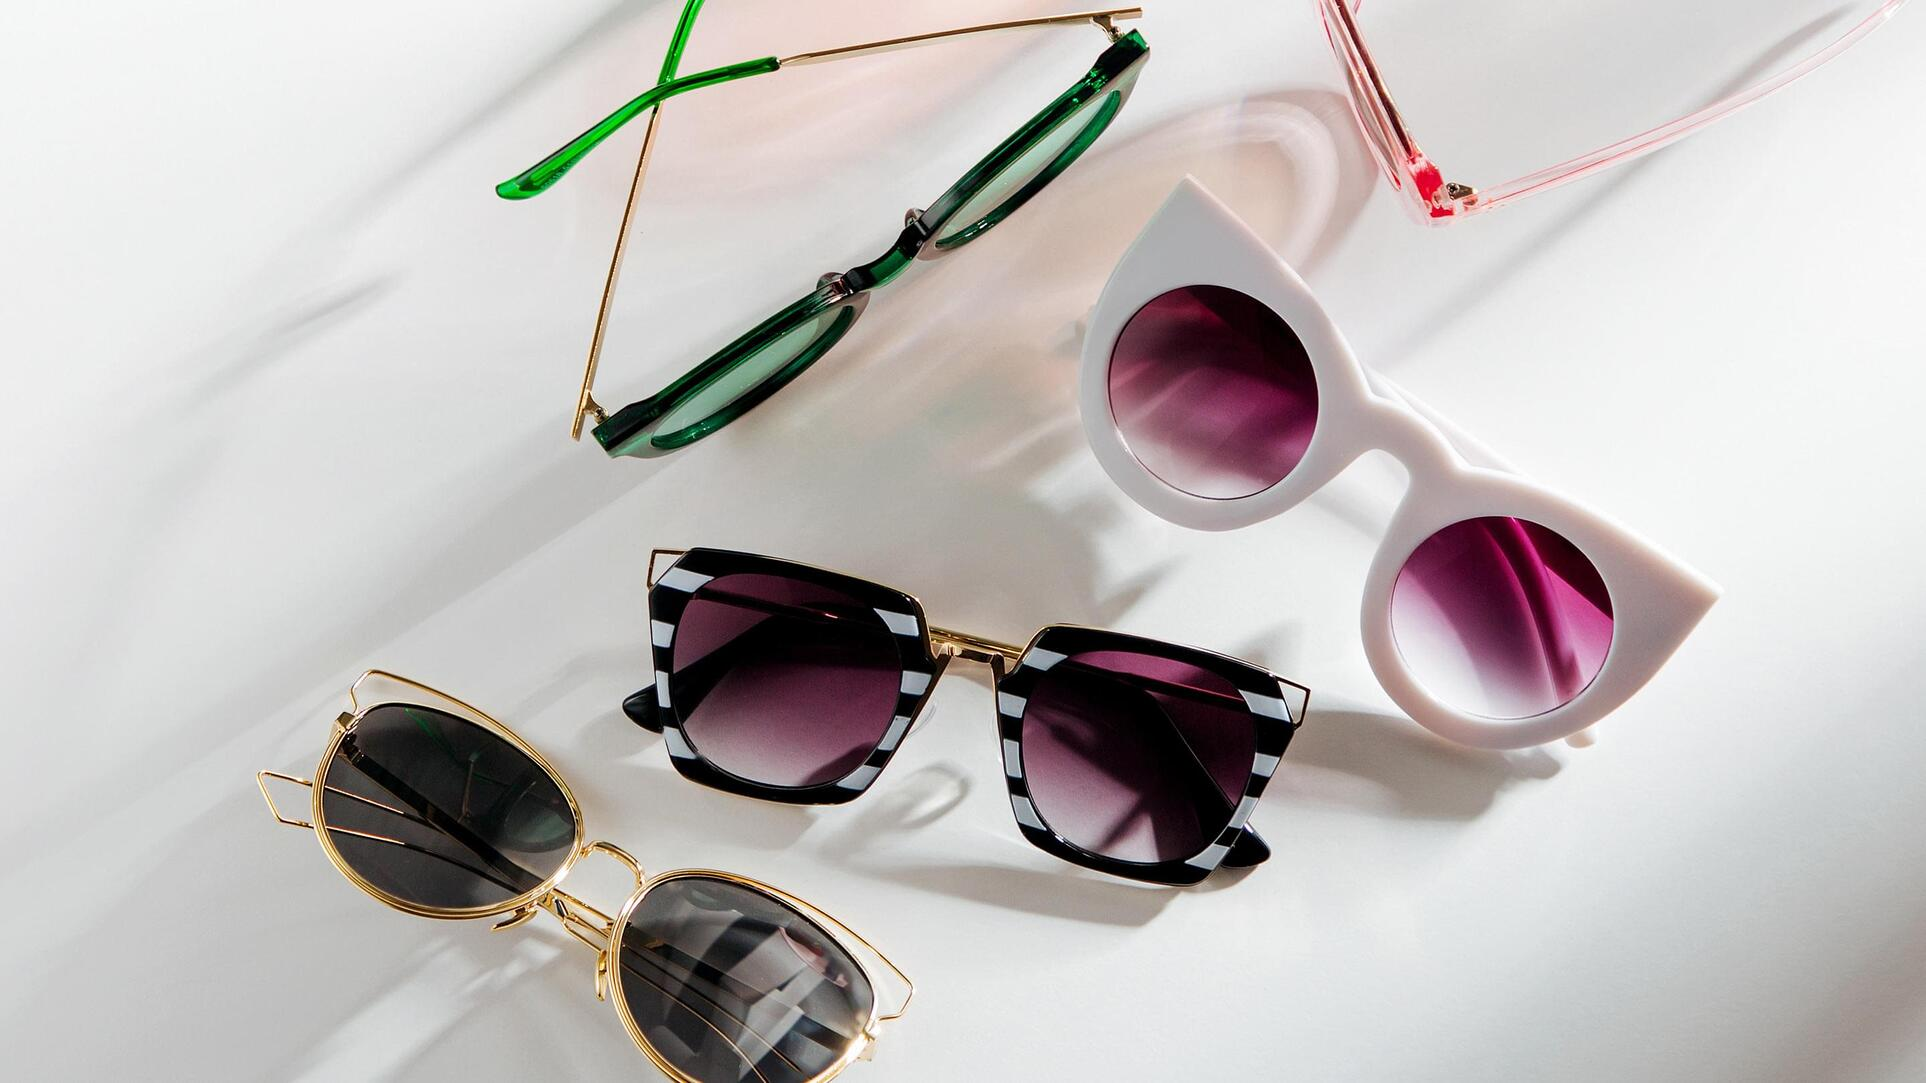 Many funky glasses styles have cool shapes, thick frames and unique features.